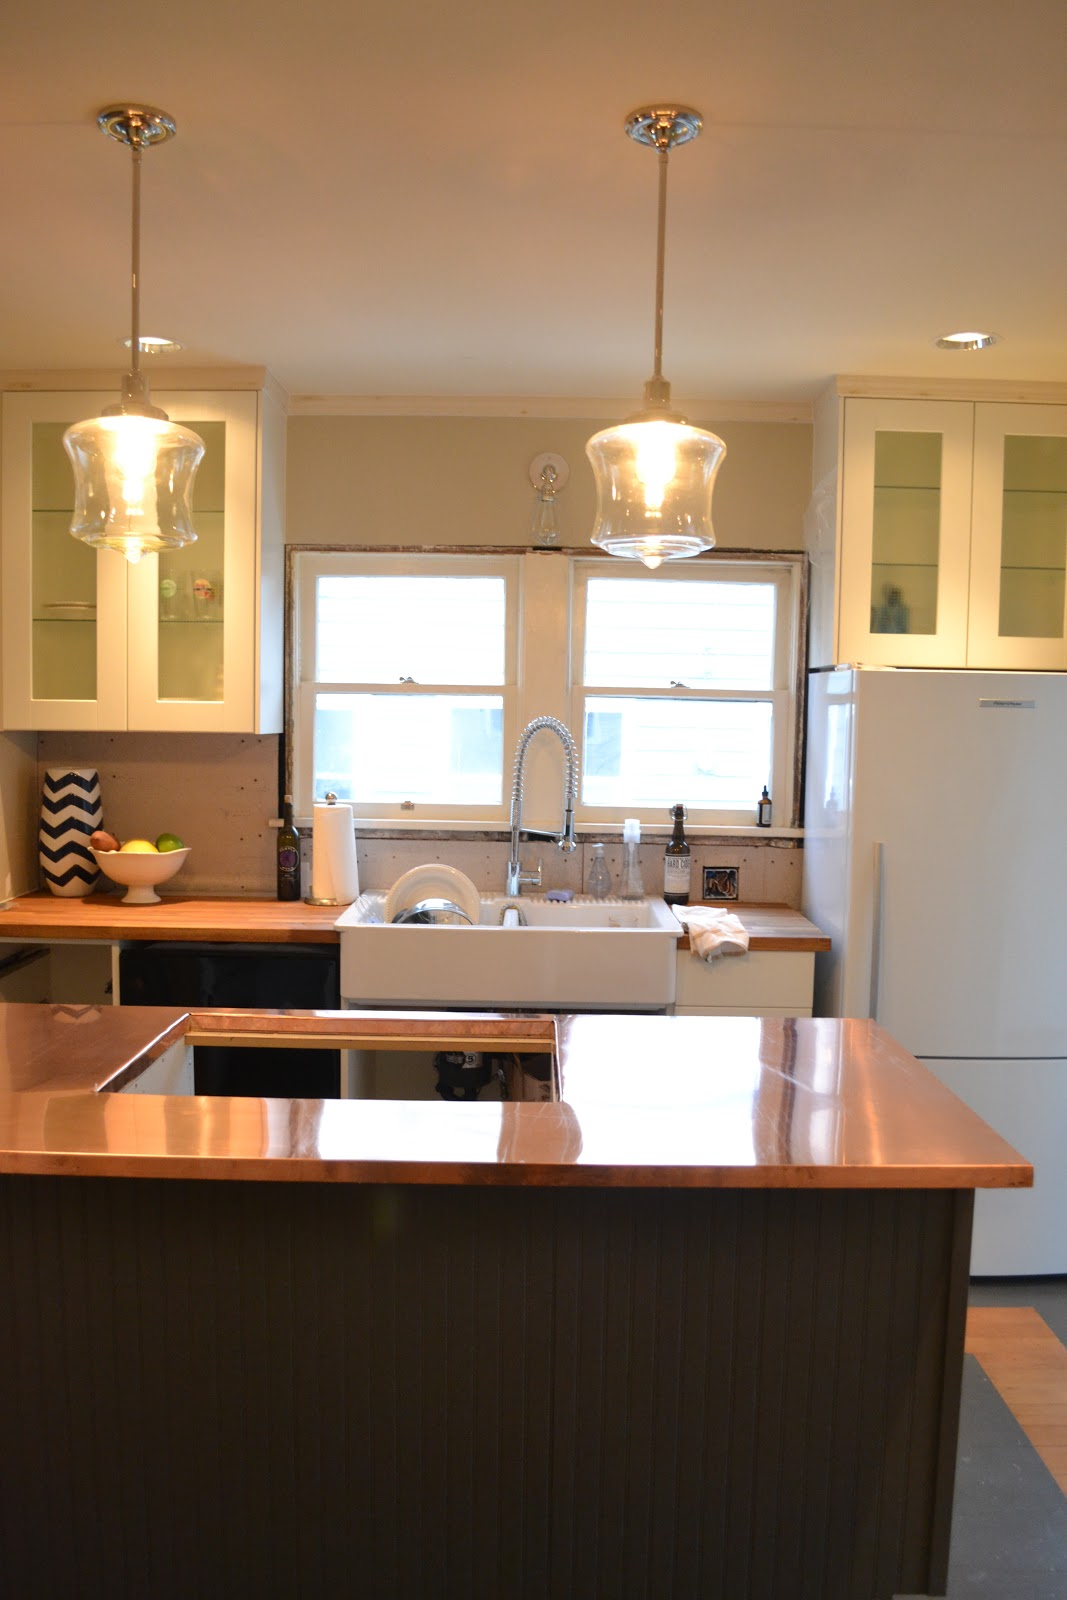 a home in the making renovate copper counters kitchen. Black Bedroom Furniture Sets. Home Design Ideas